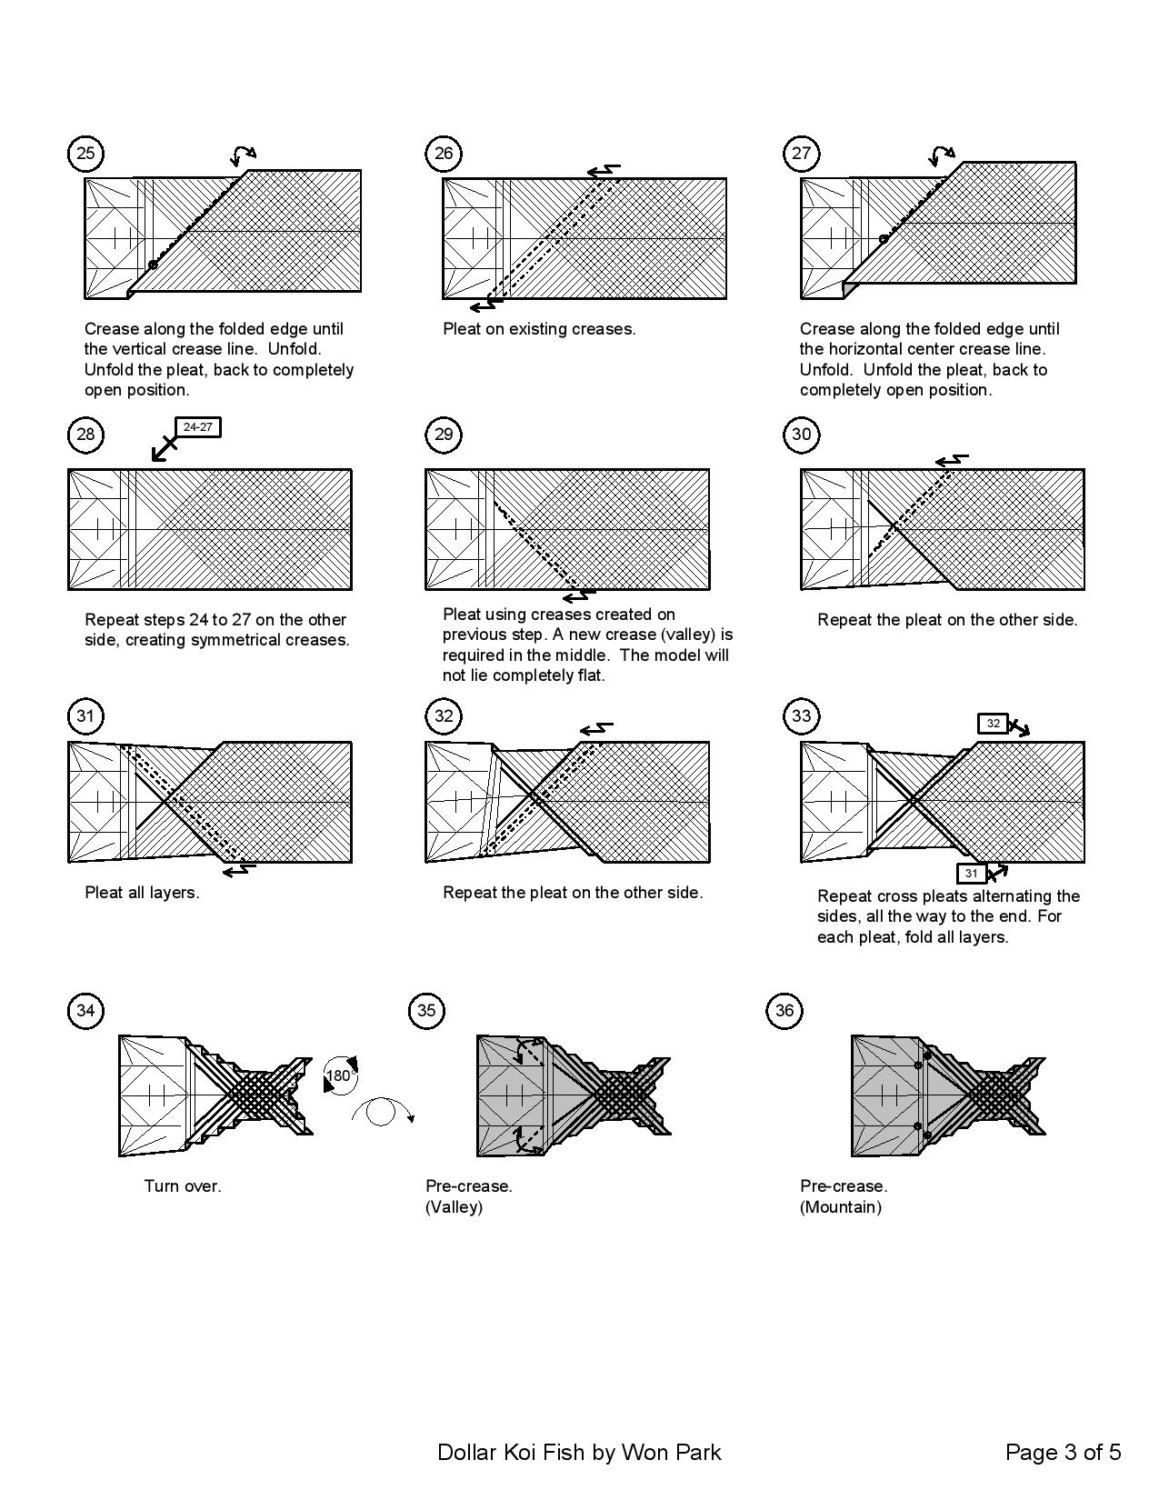 KOI FISH Diagram (3 of 5) Money Origami Dollar Bill Art ... - photo#12